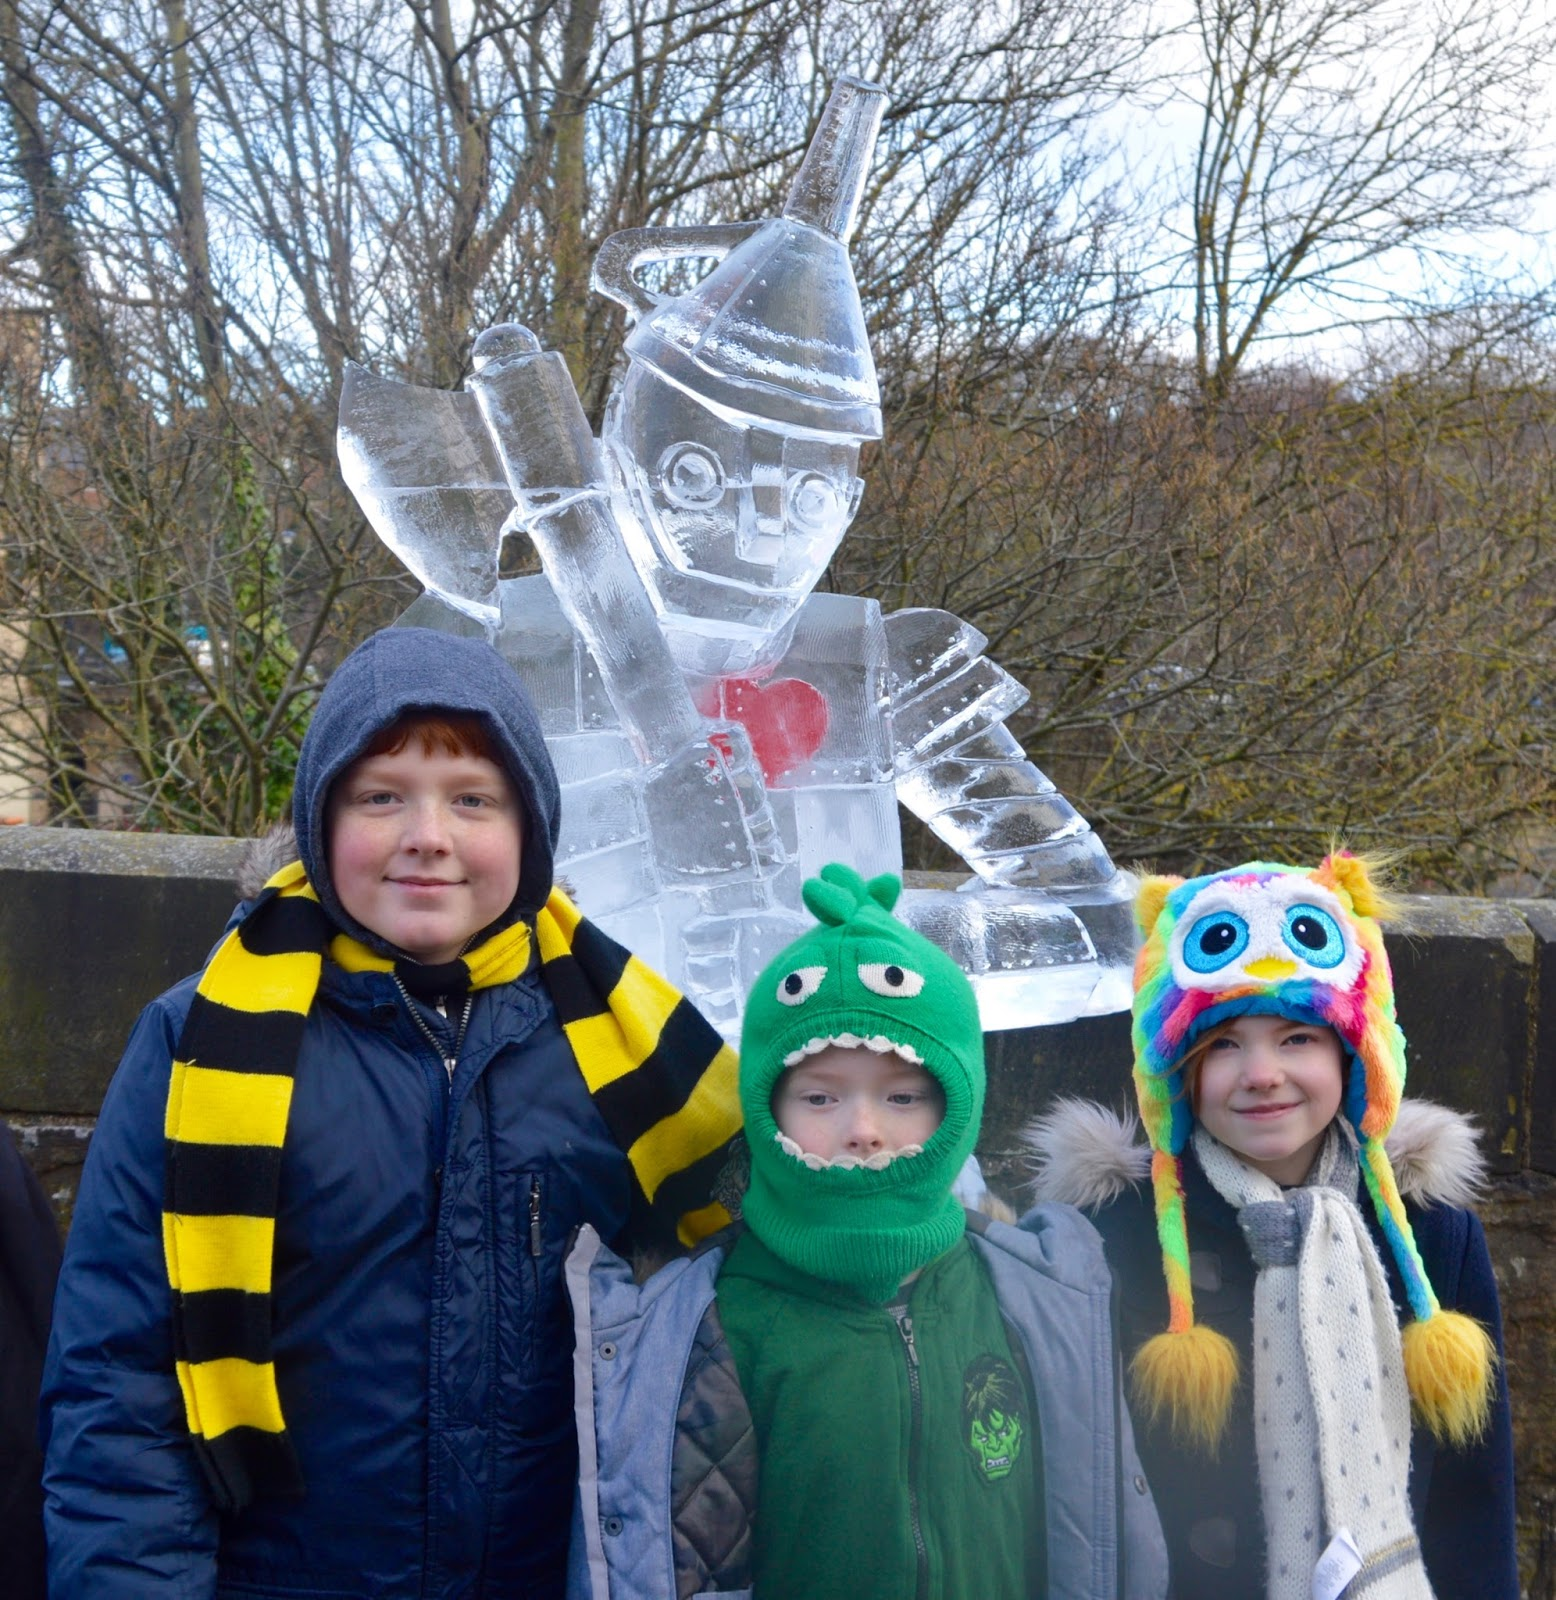 The Best Days Out in County Durham for Kids  - Fire and Ice